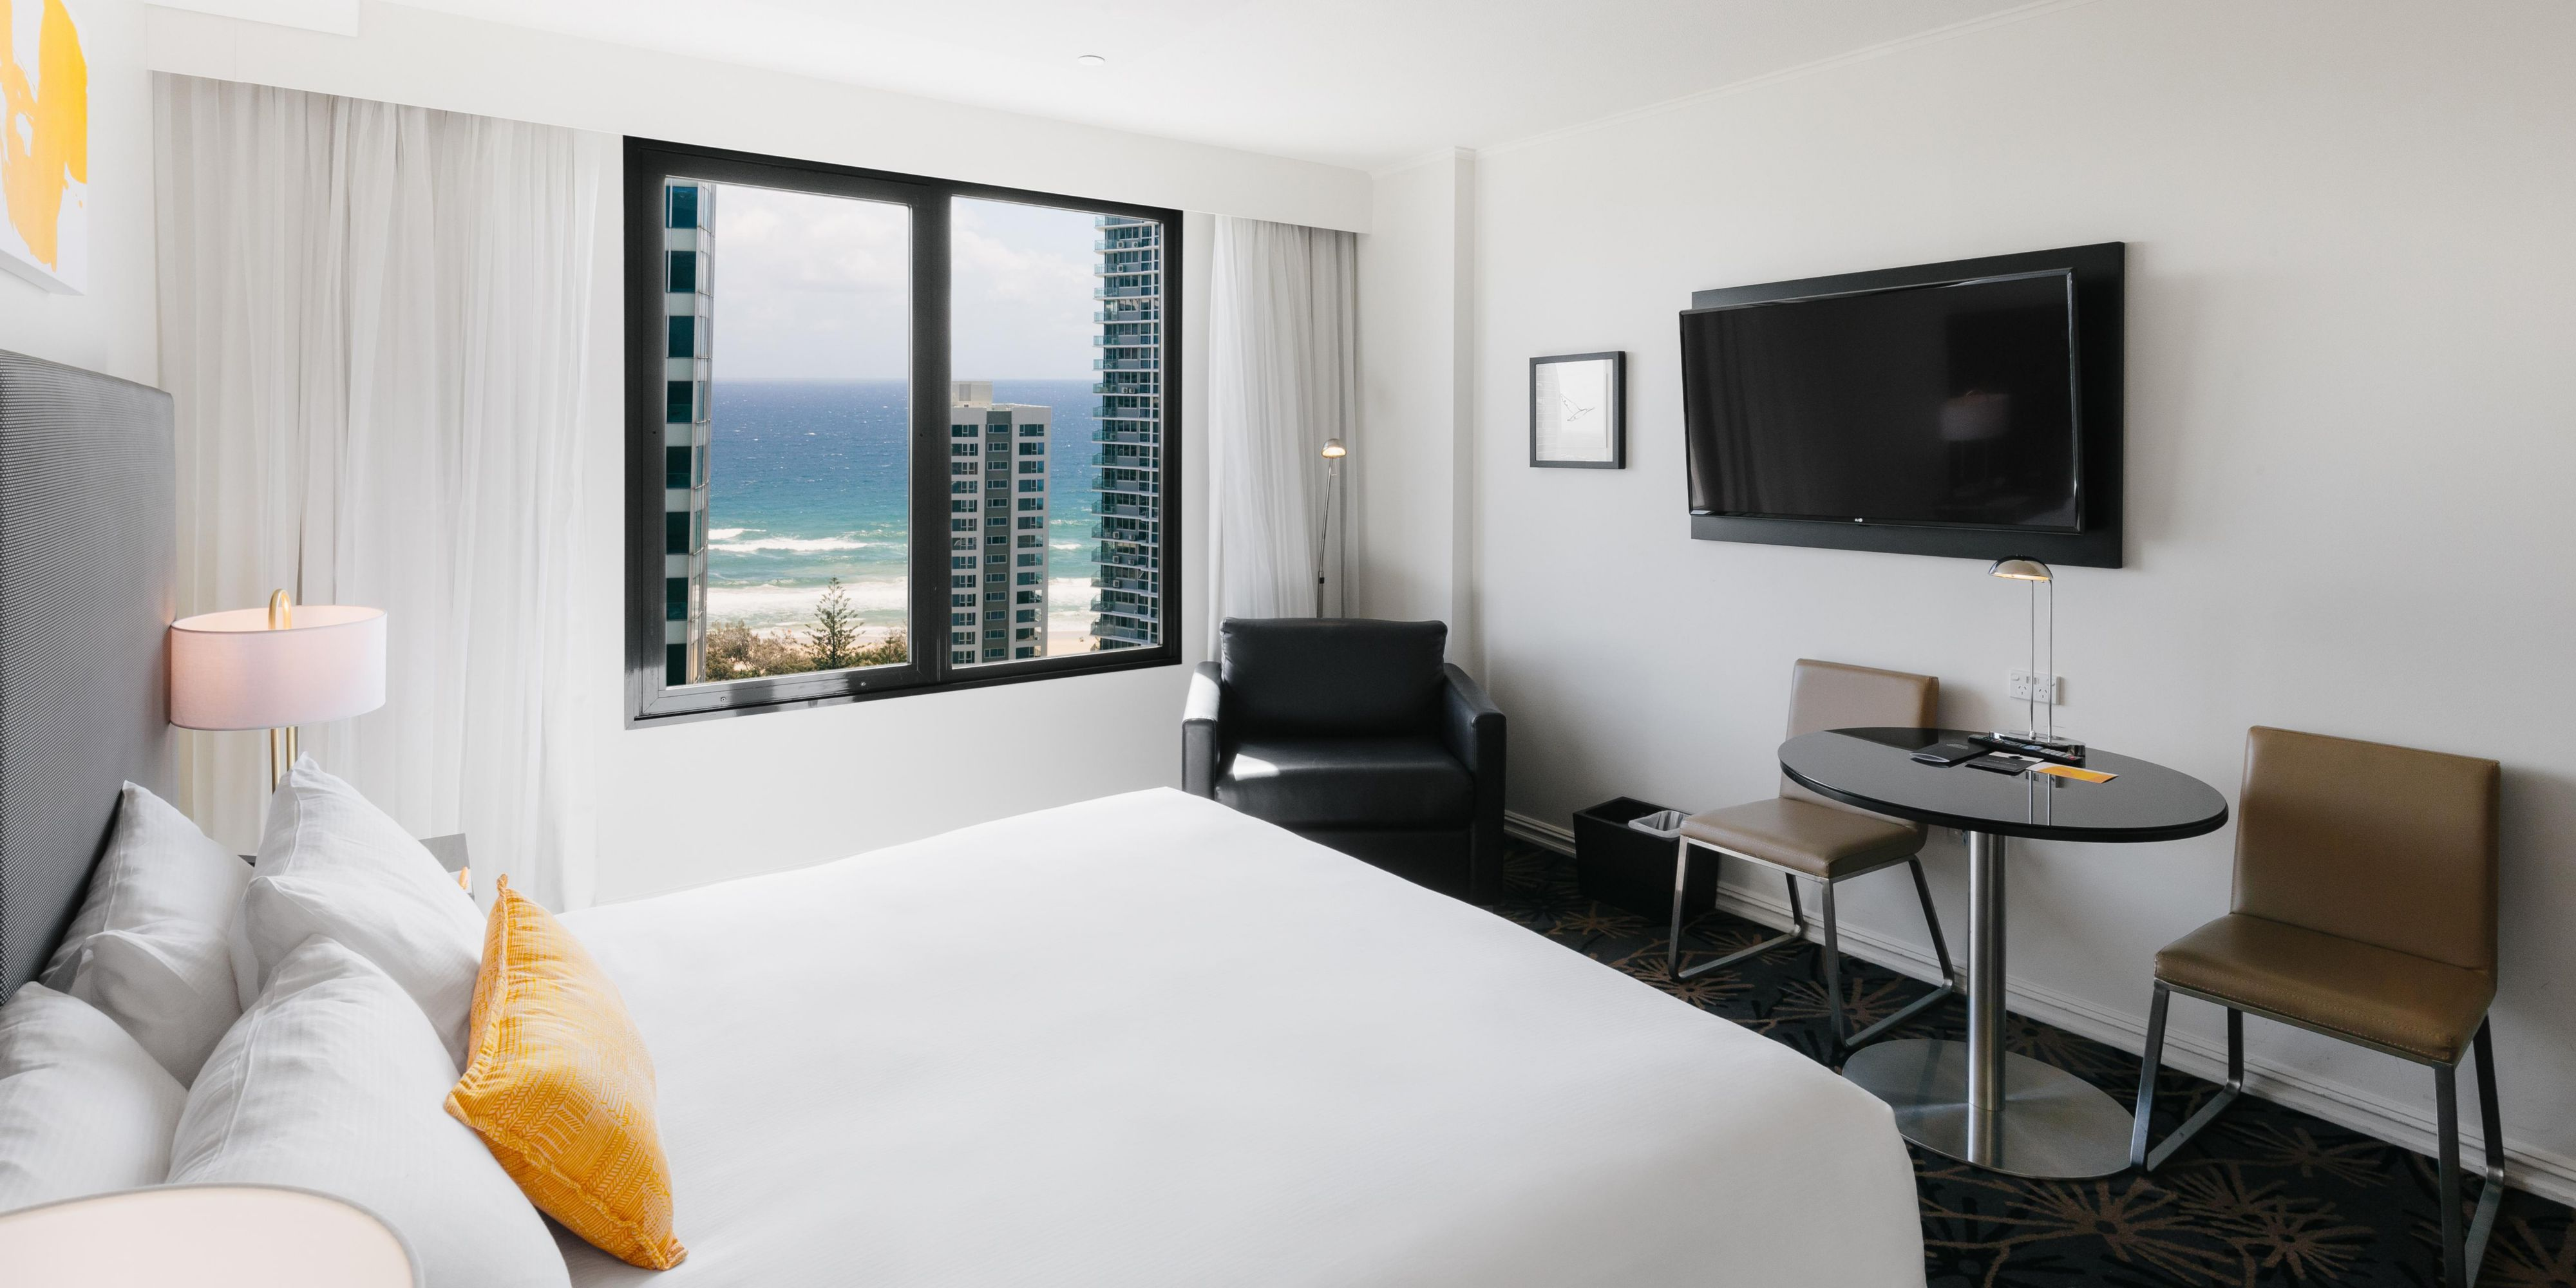 Glimpse the Pacific ocean within the comfort of your Superior room